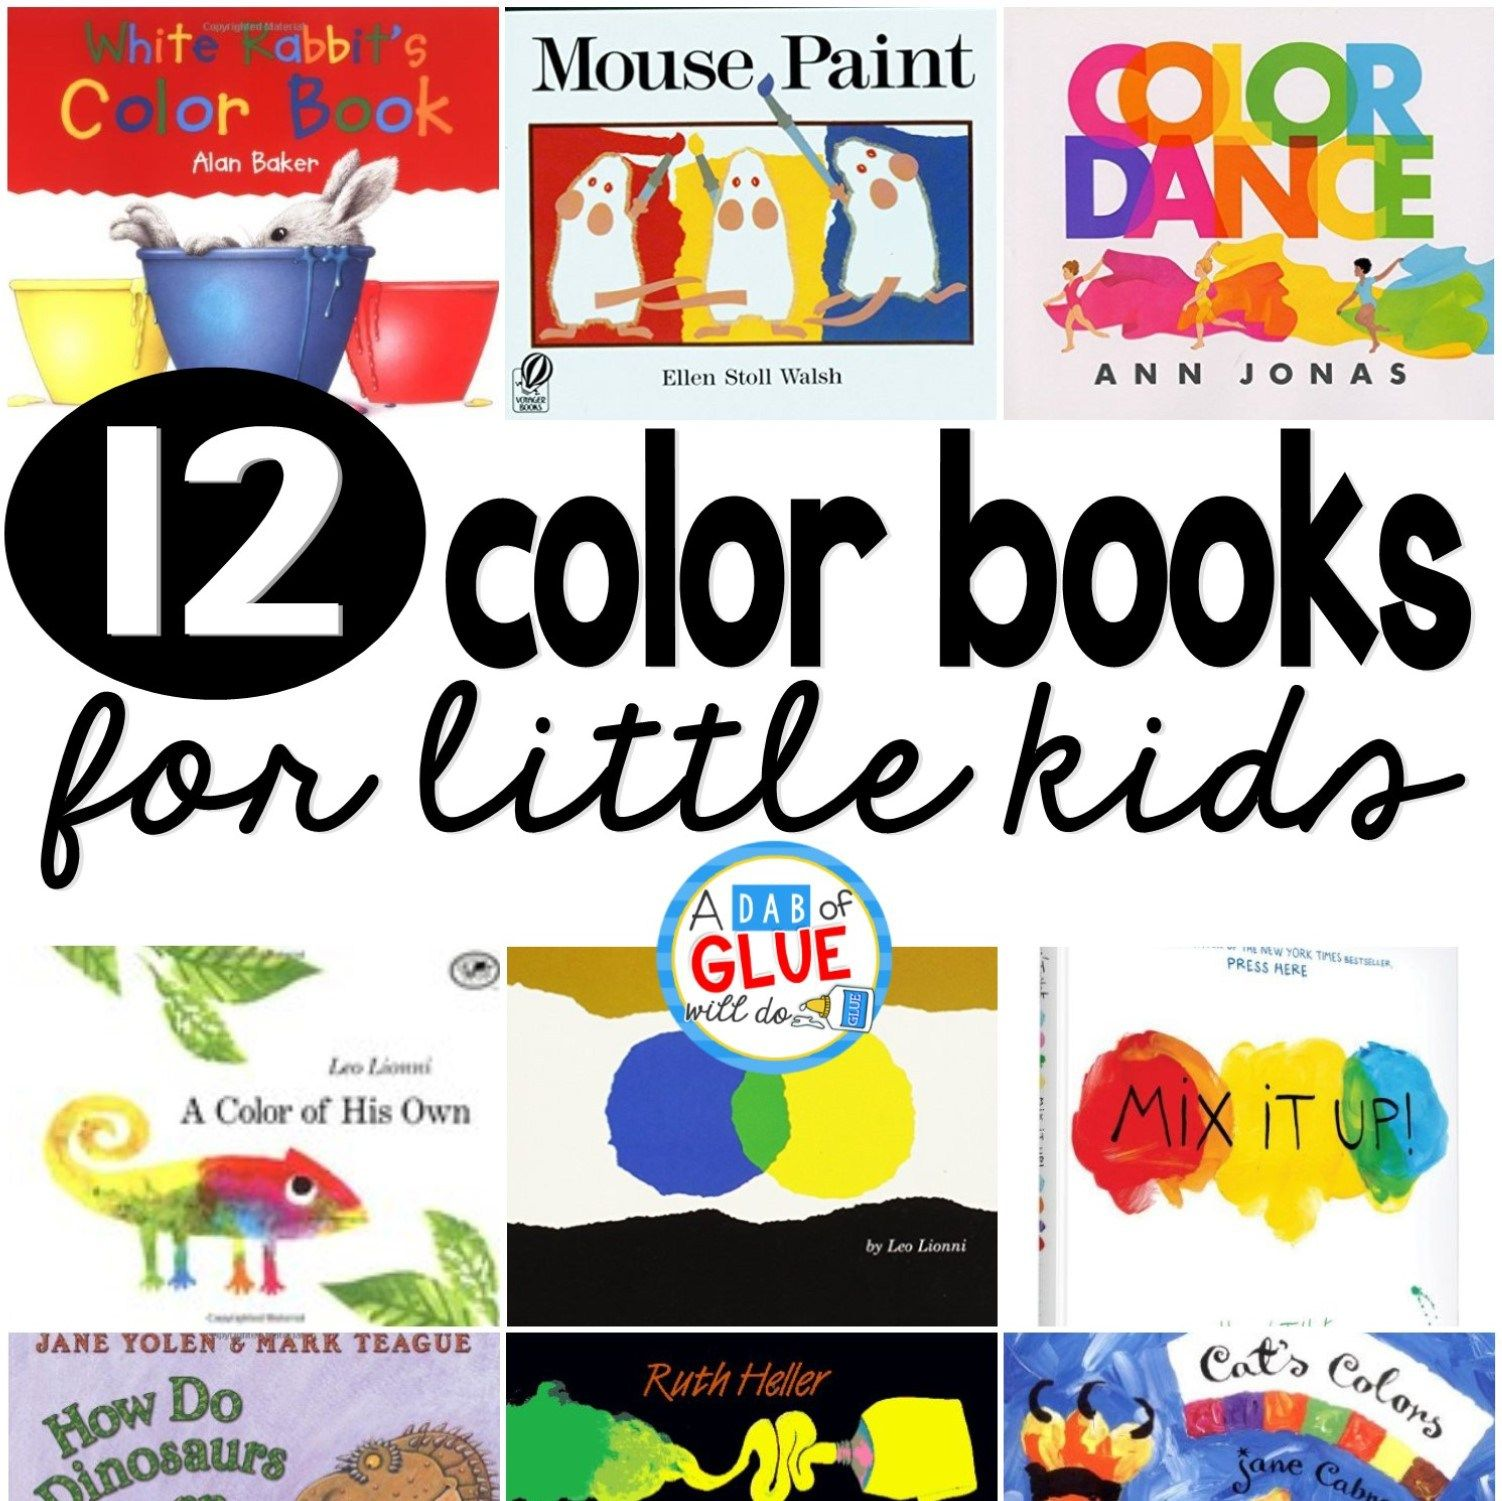 Books about color for kids - 12 Shapes Books For Little Kids